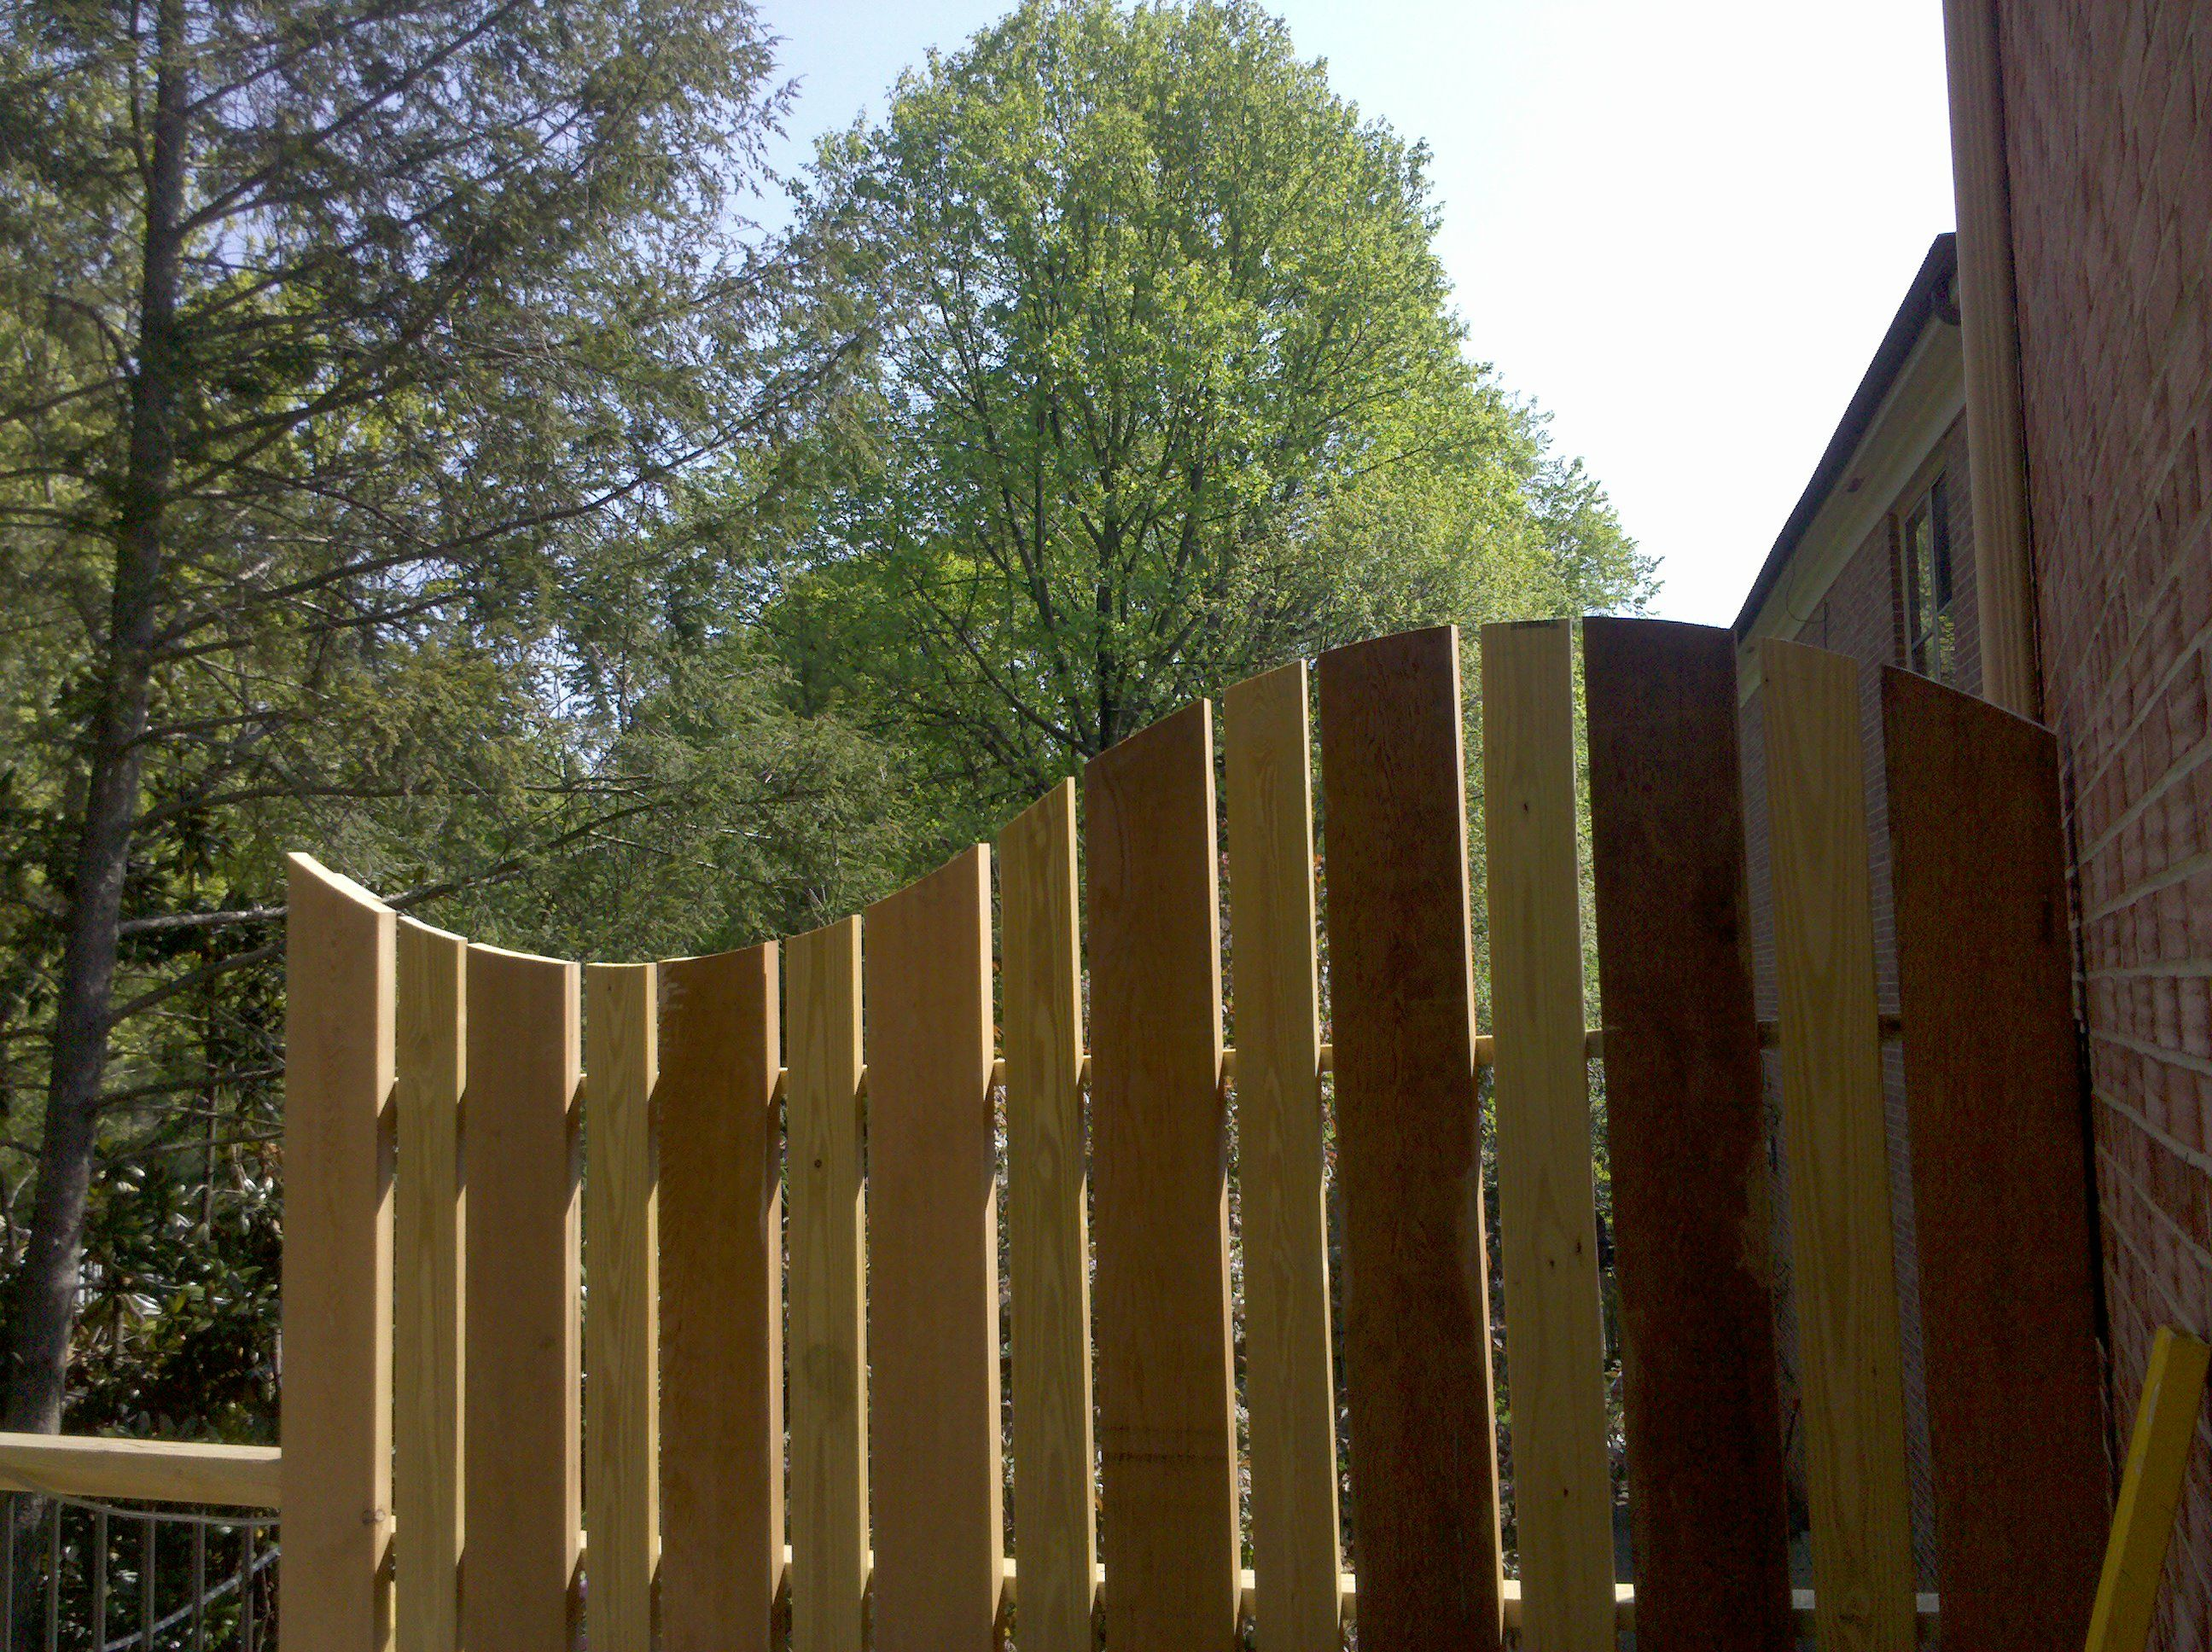 Curve cut into top of privacy wall to block view from neighbor s